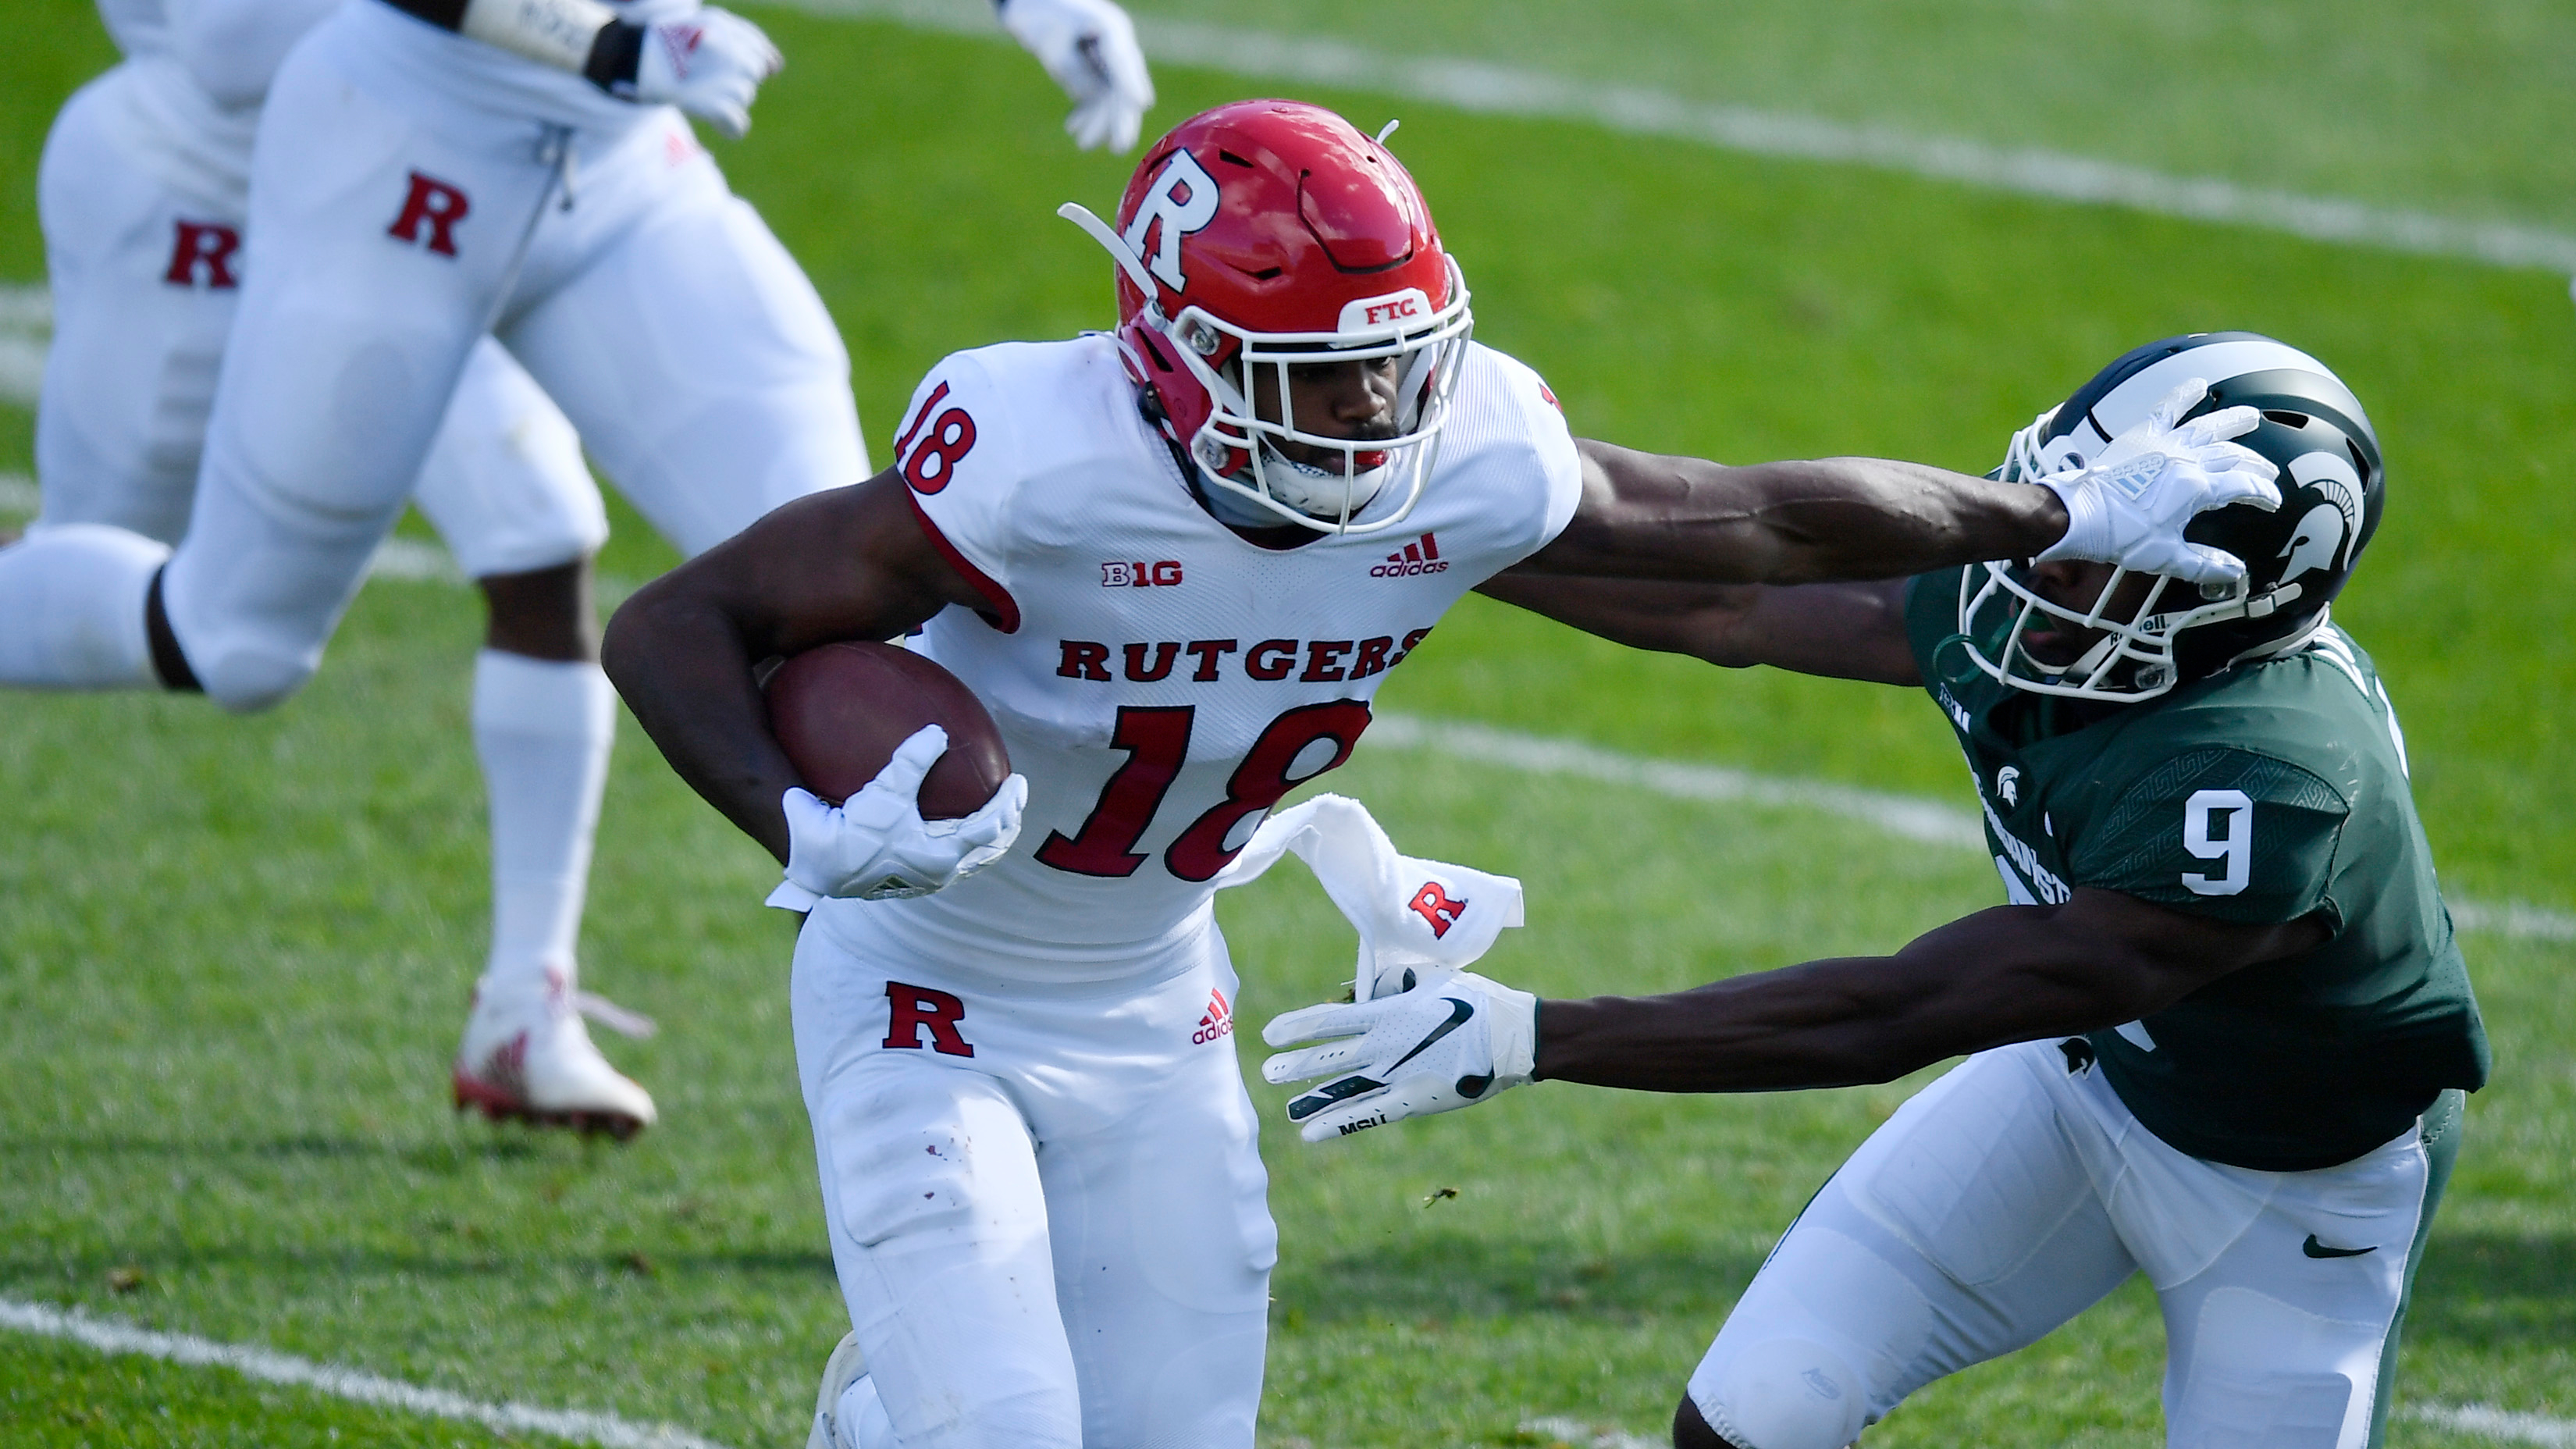 Rutgers-vs-michigan-state-102420-getty-ftr_jgfuedl8hjs118l6kkbgqwbry